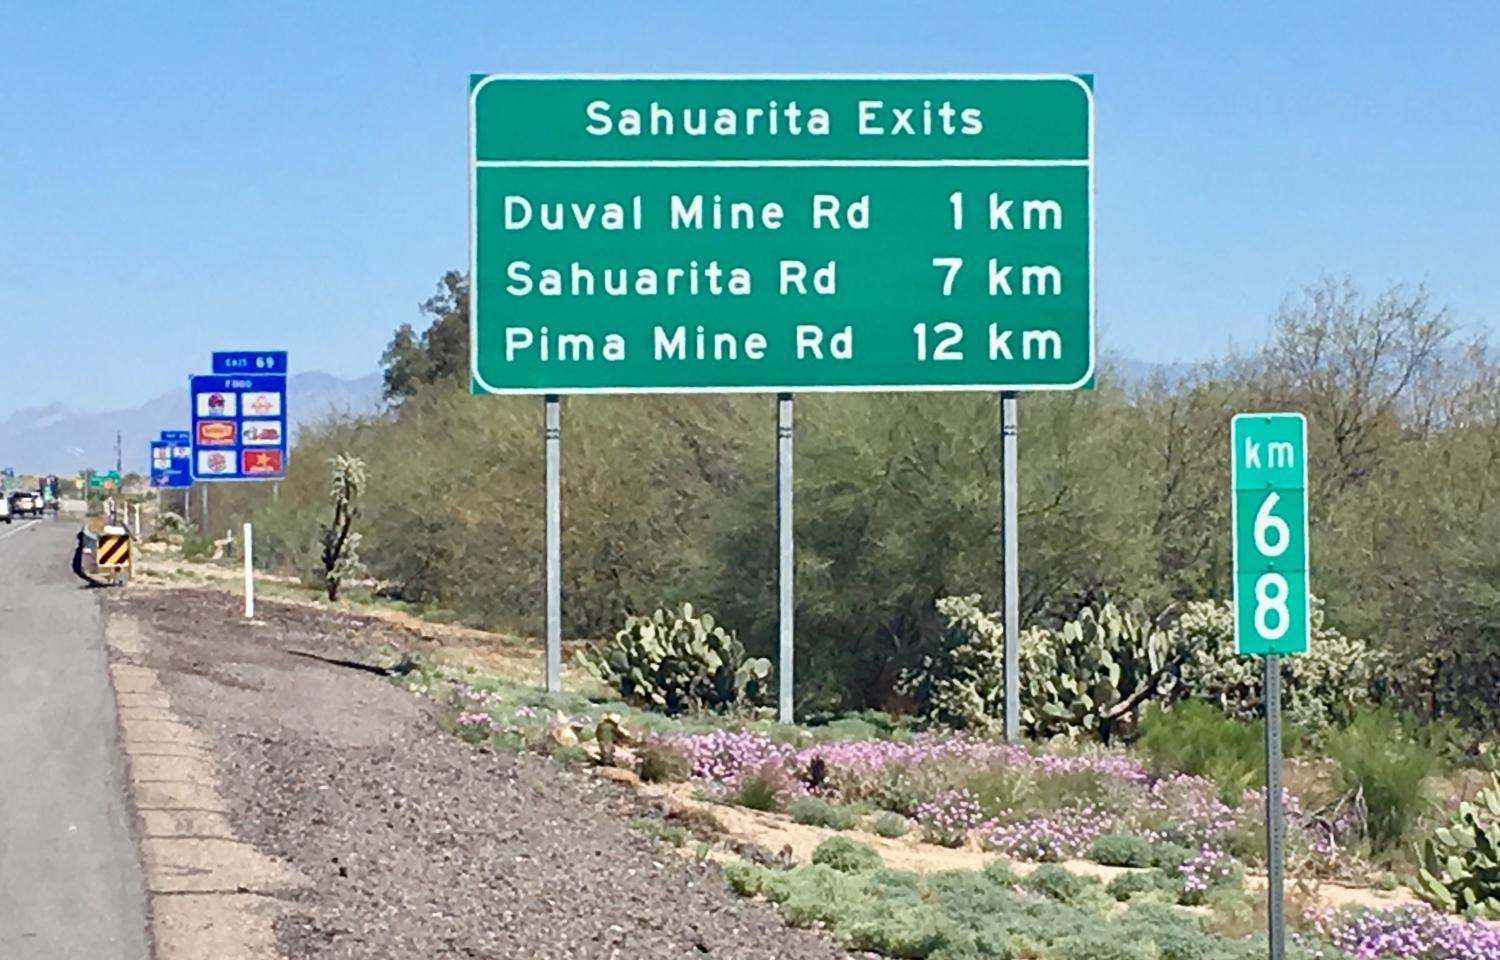 distance signs in kilometers